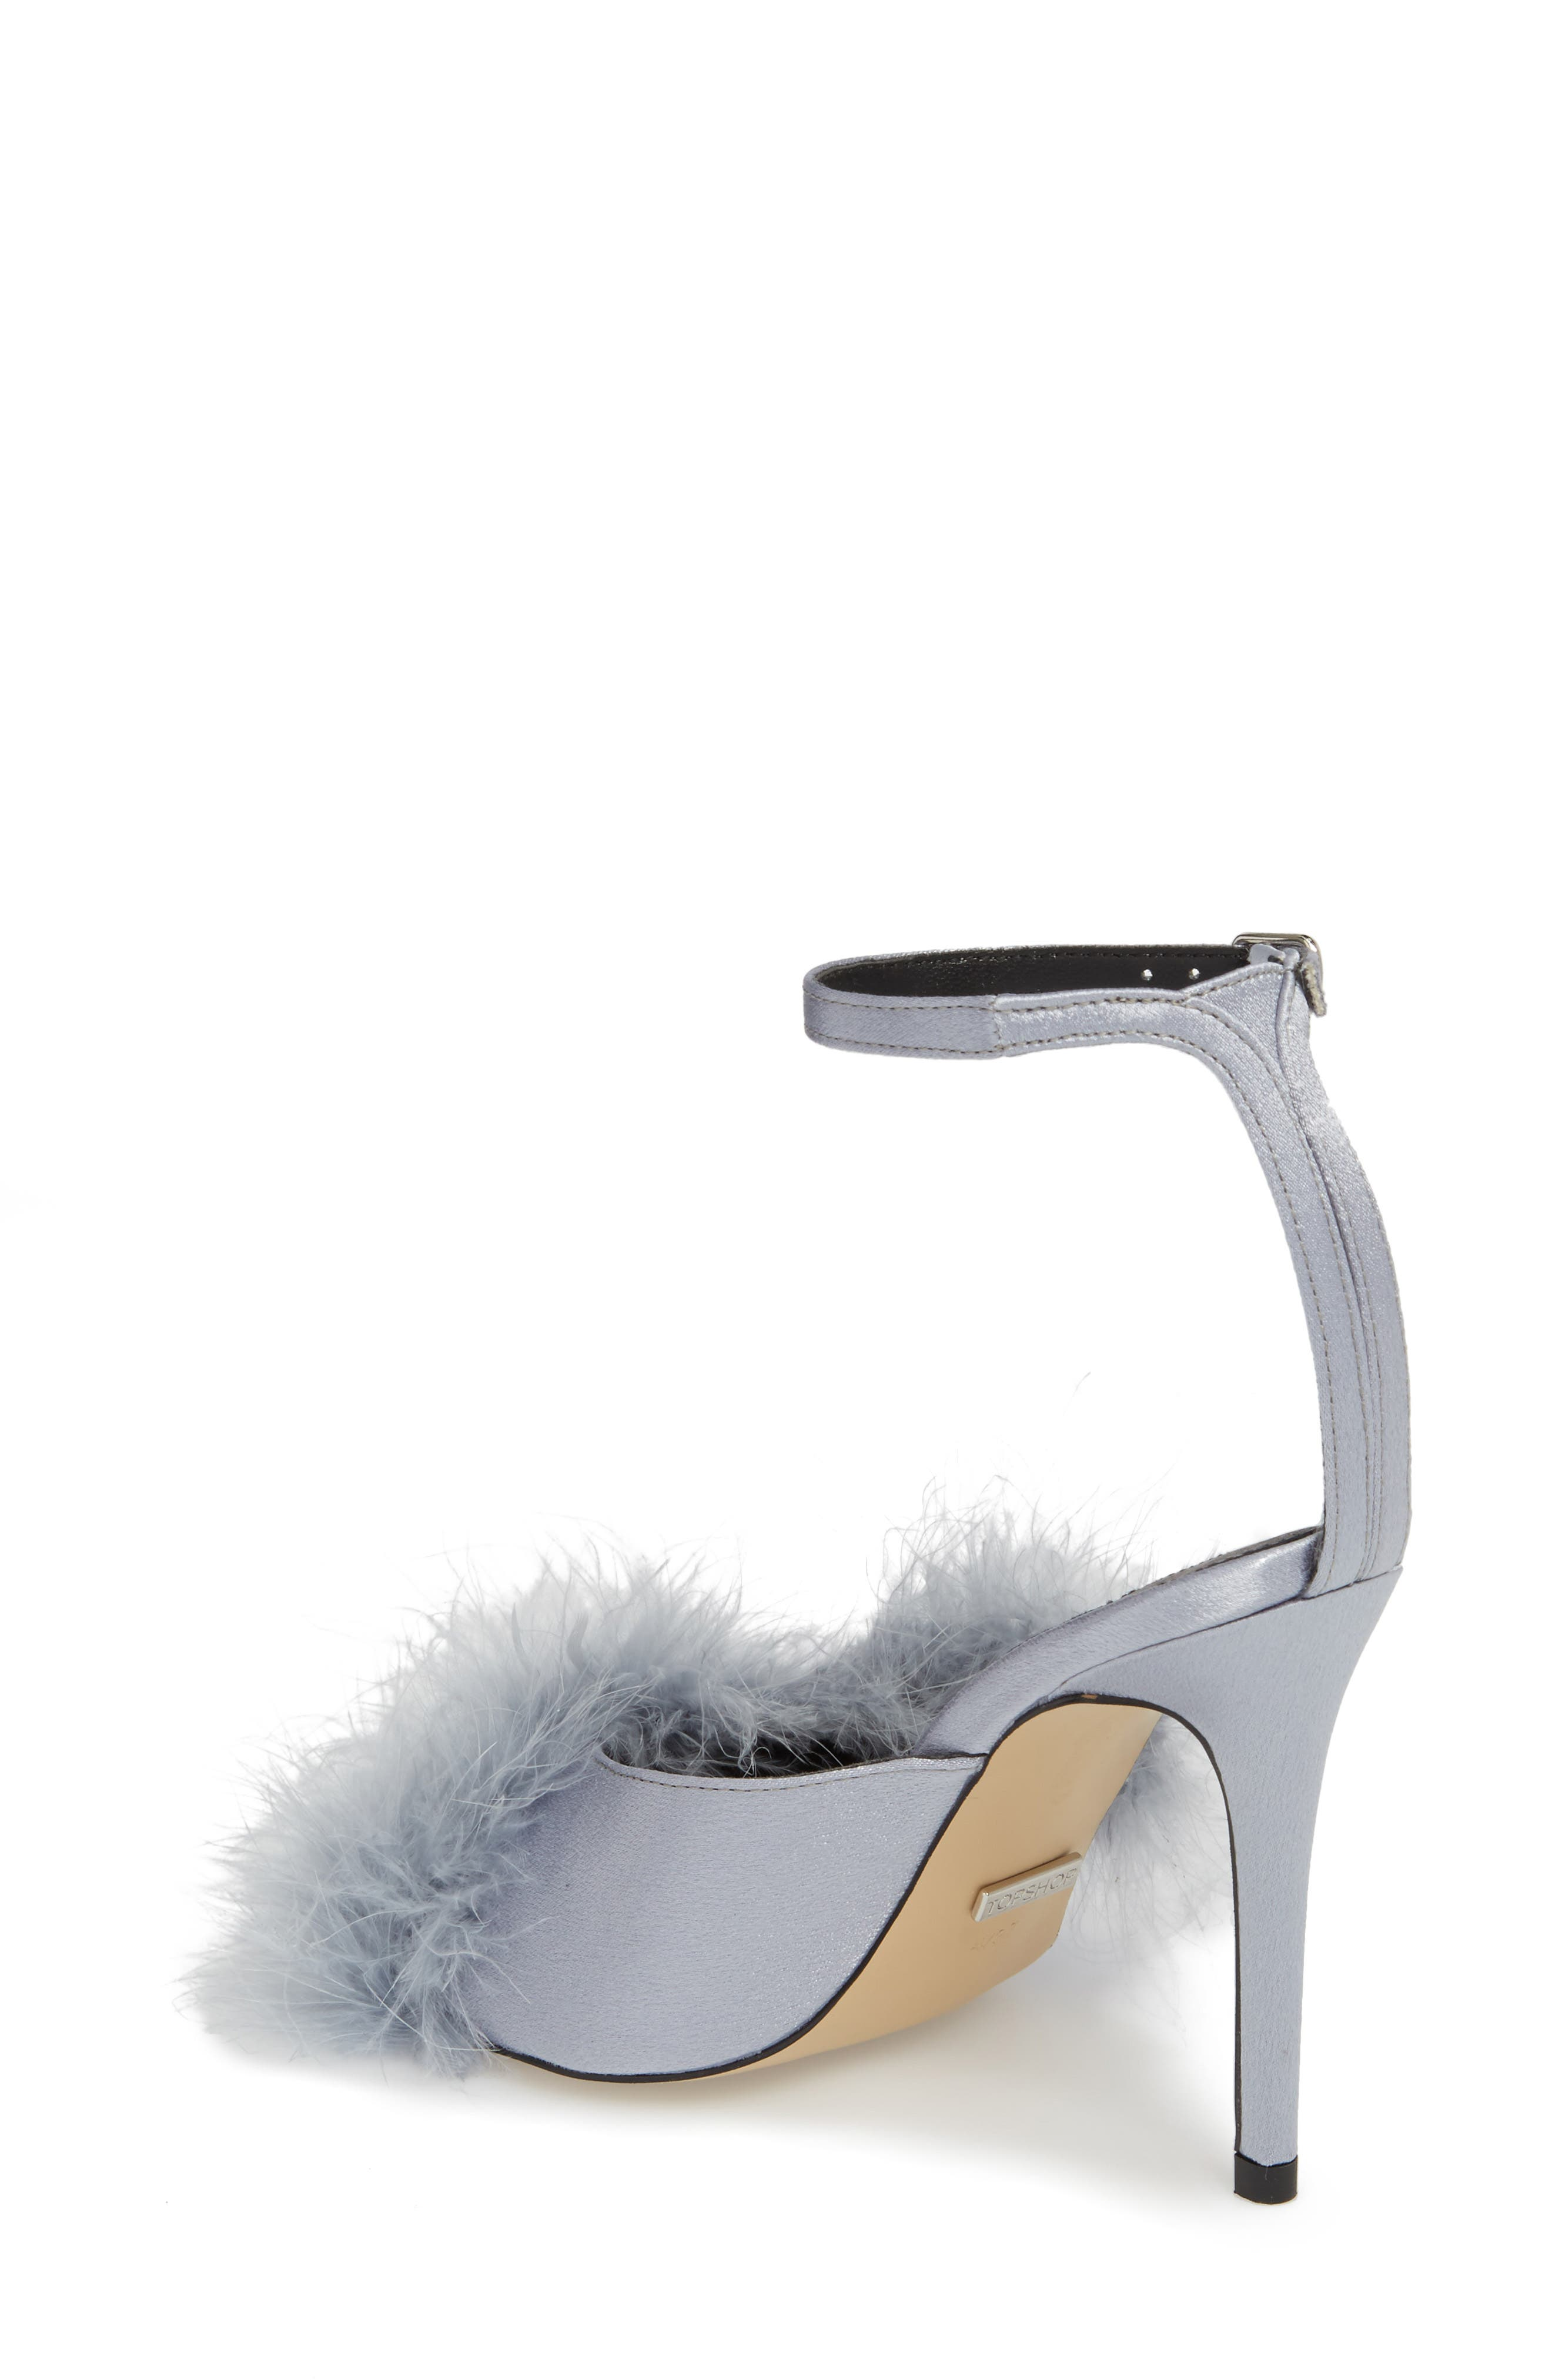 Roar Feather Sandal,                             Alternate thumbnail 2, color,                             Grey